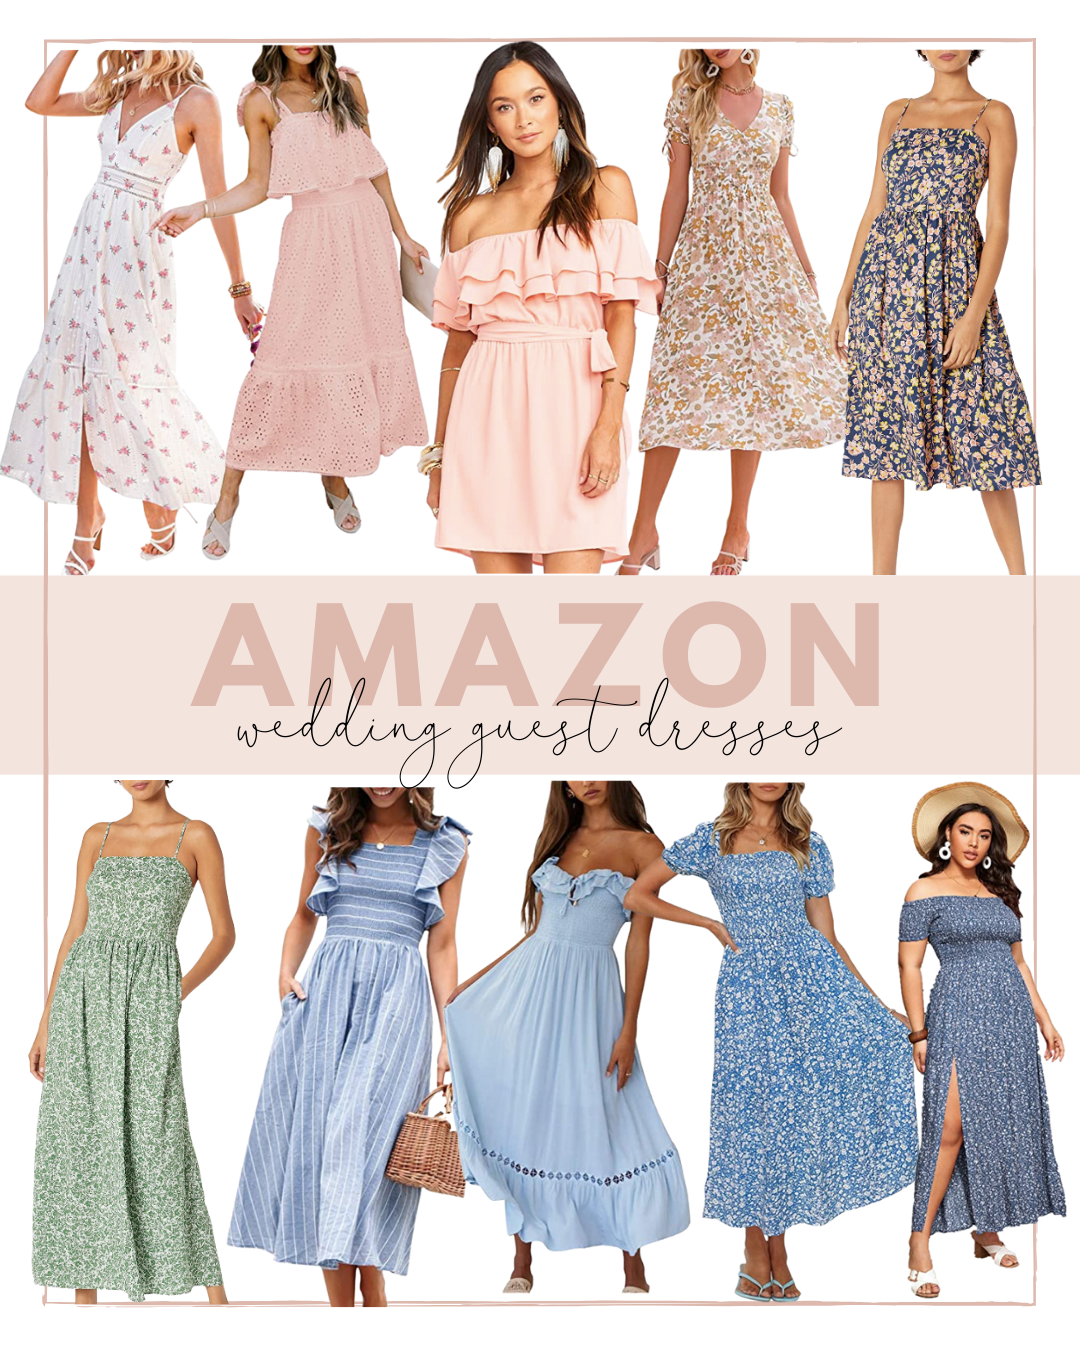 Affordable Wedding Guest Dresses from Amazon